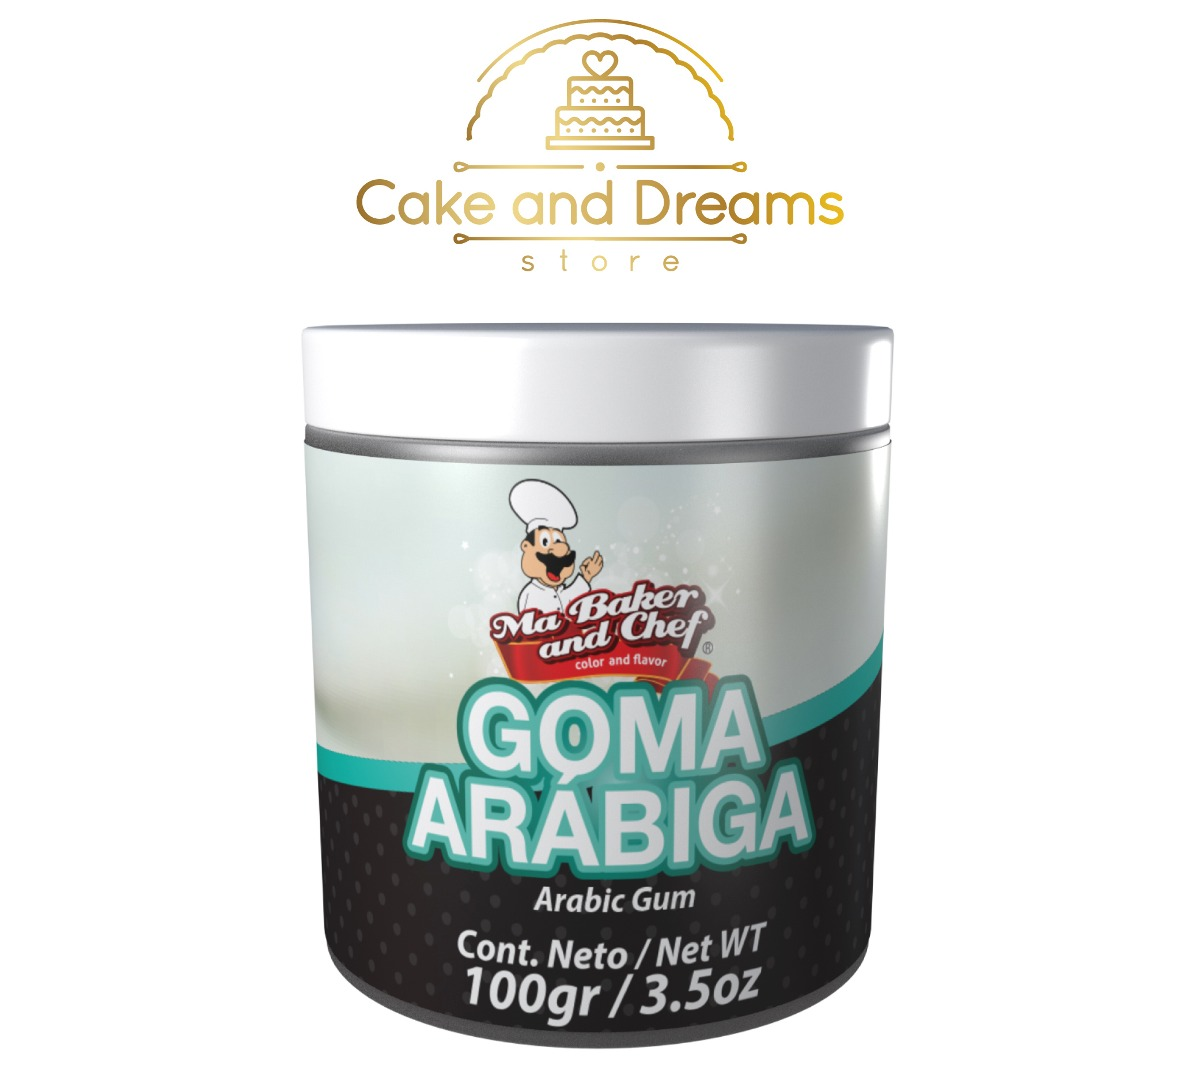 Goma Arábiga 100g - Ma Baker and Chef